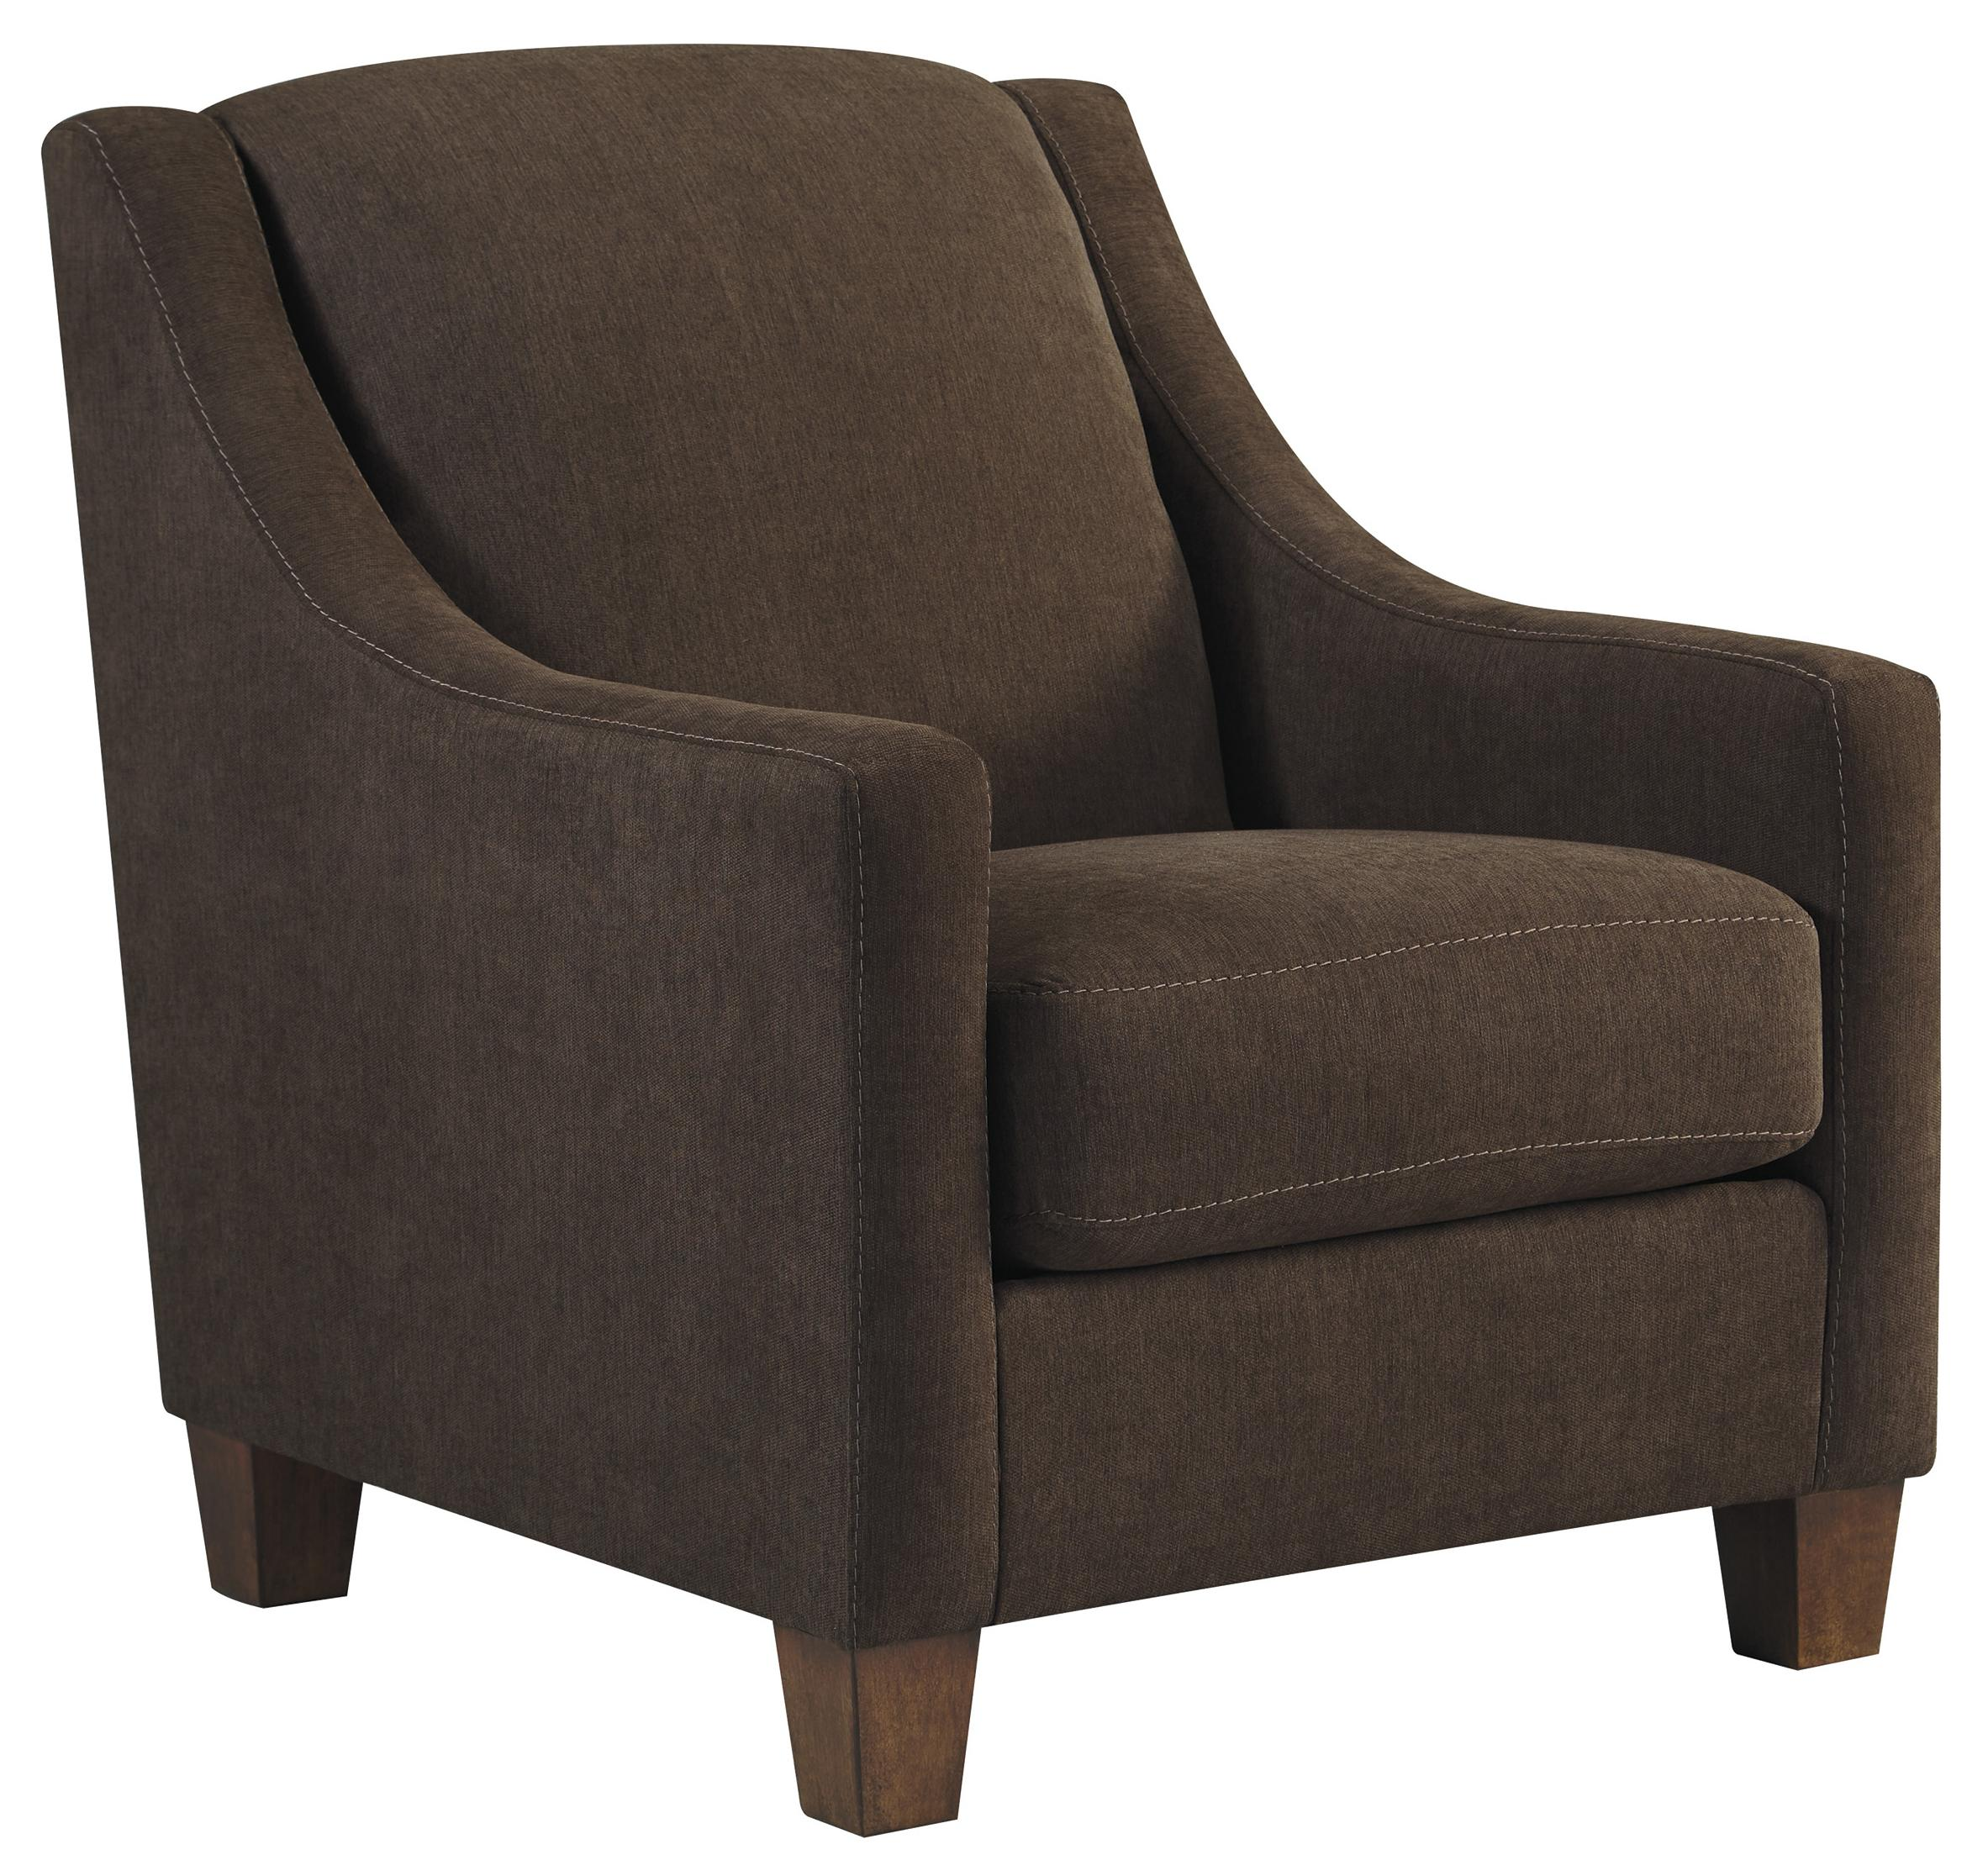 Benchcraft Maier - Walnut Accent Chair - Item Number: 4520121